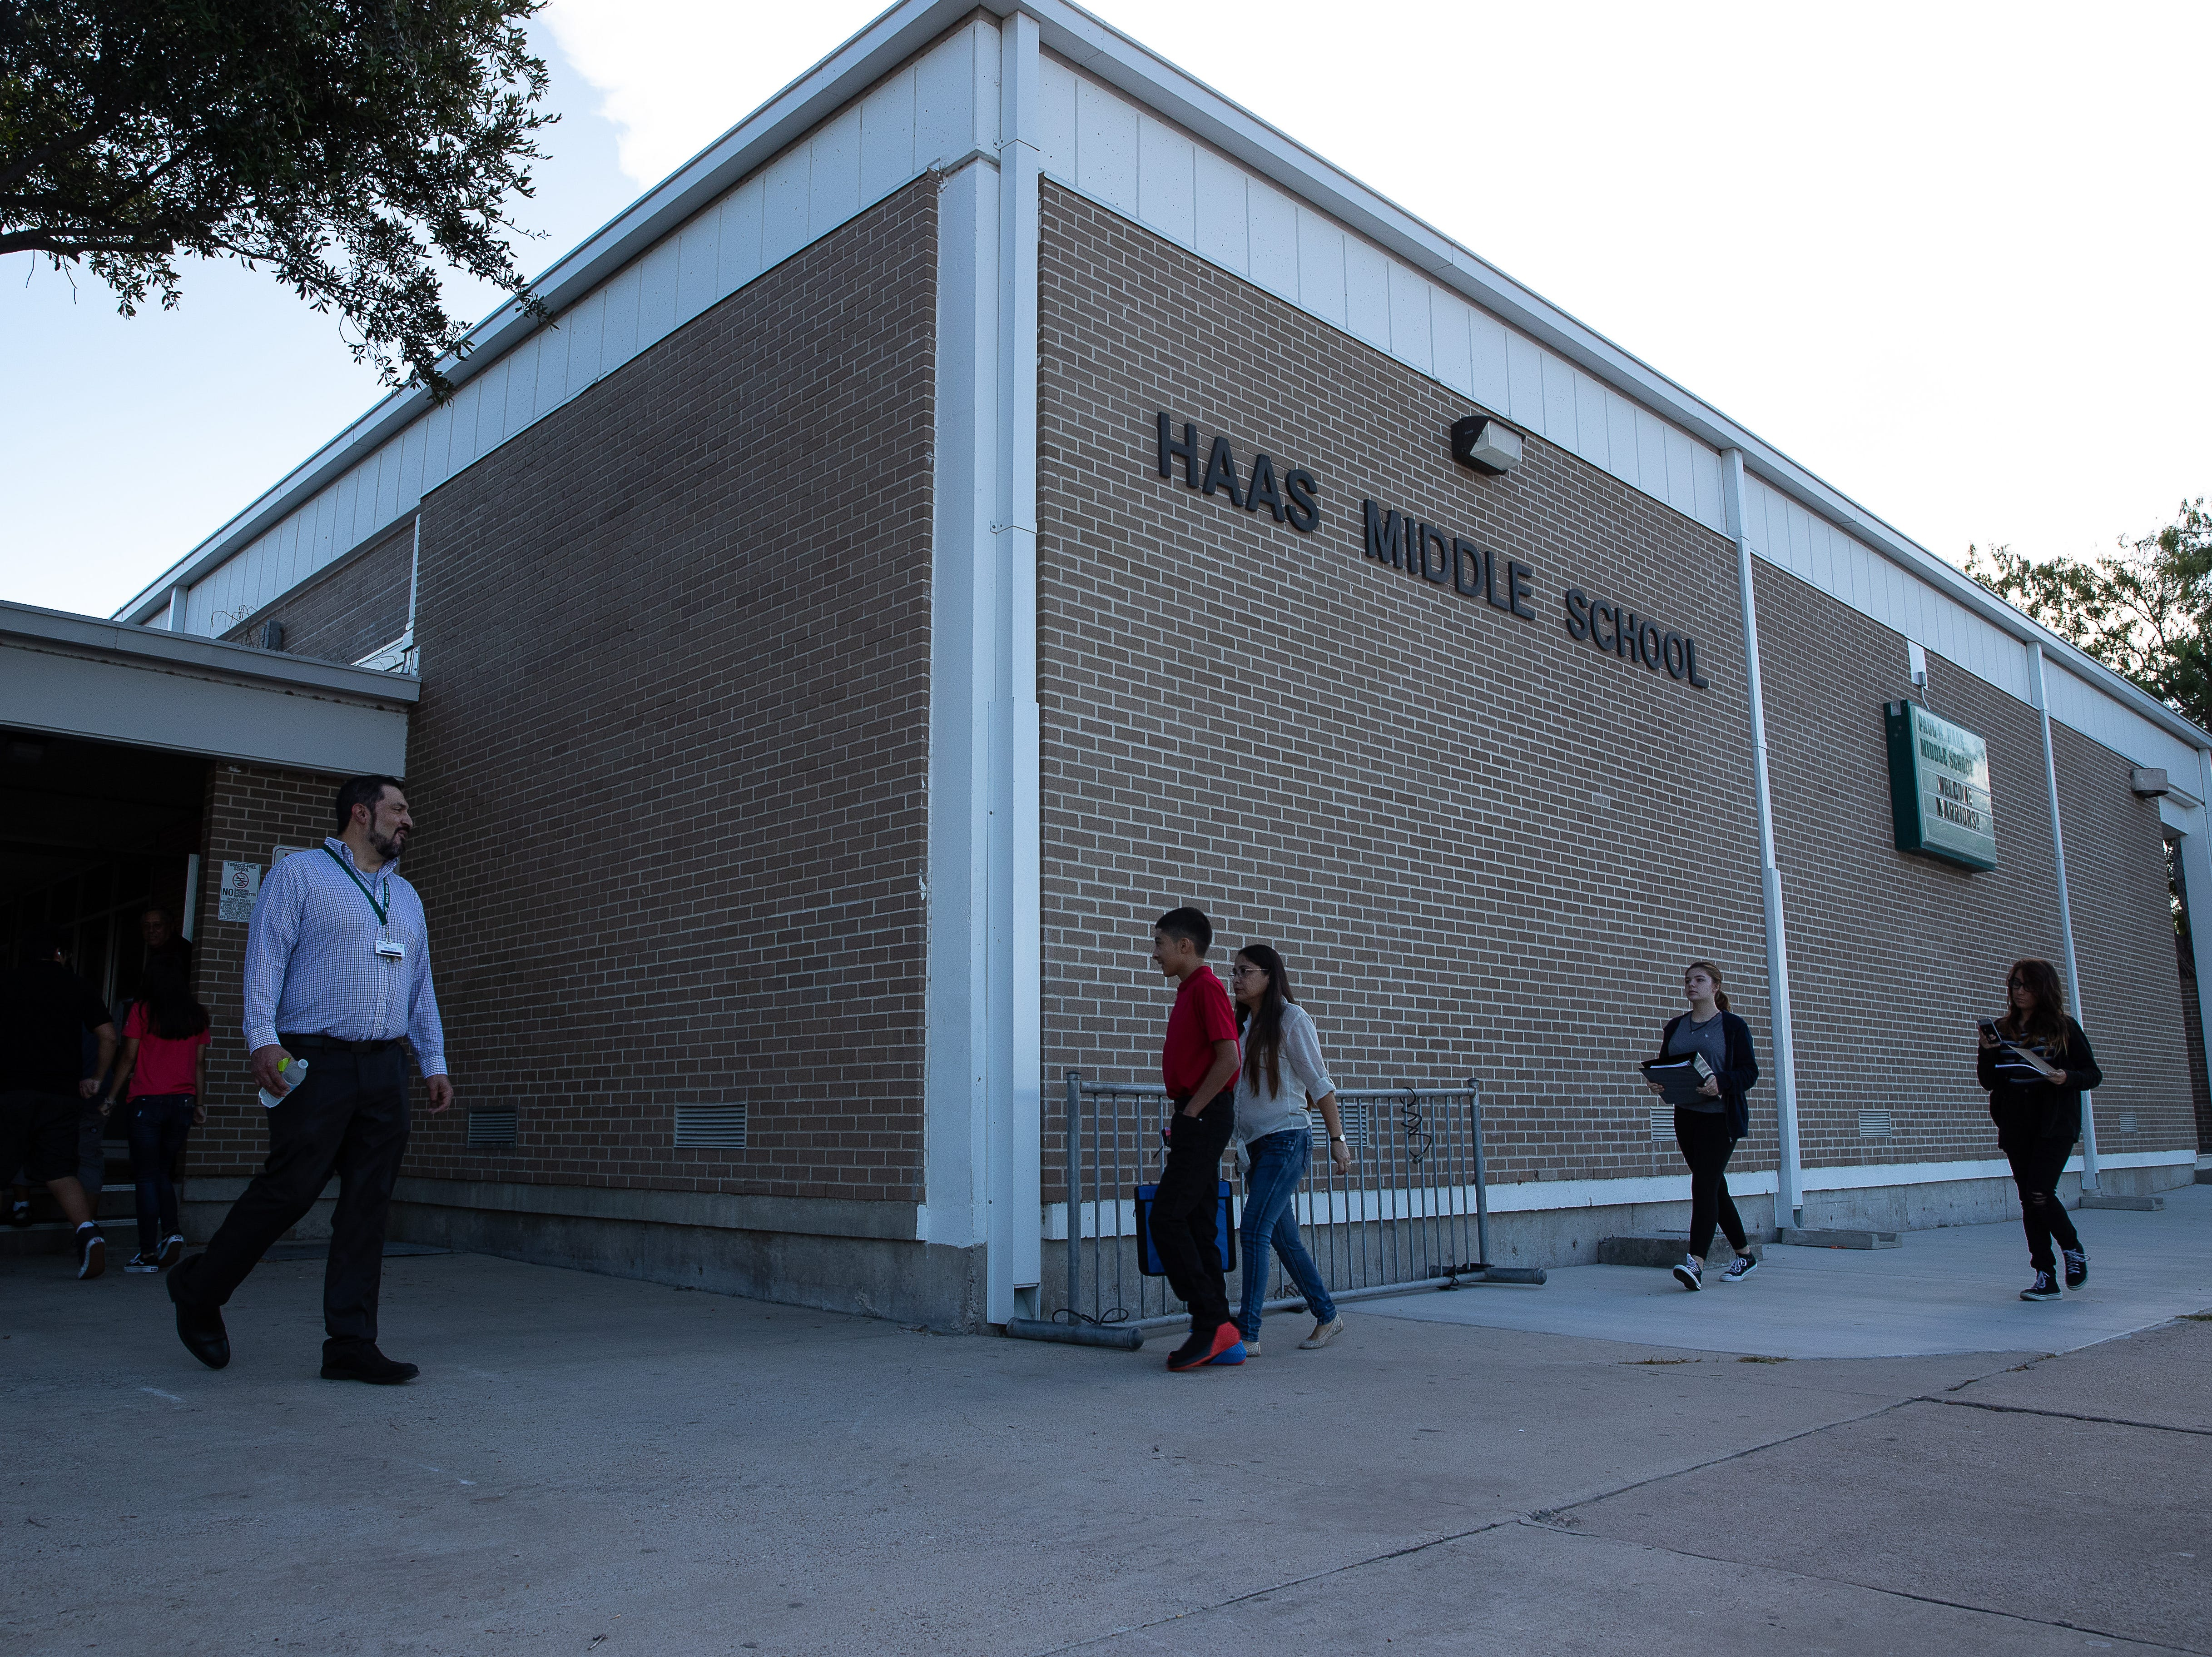 Students arrive Haas Middle school on the first day of school, Monday, Aug. 27, 2018.